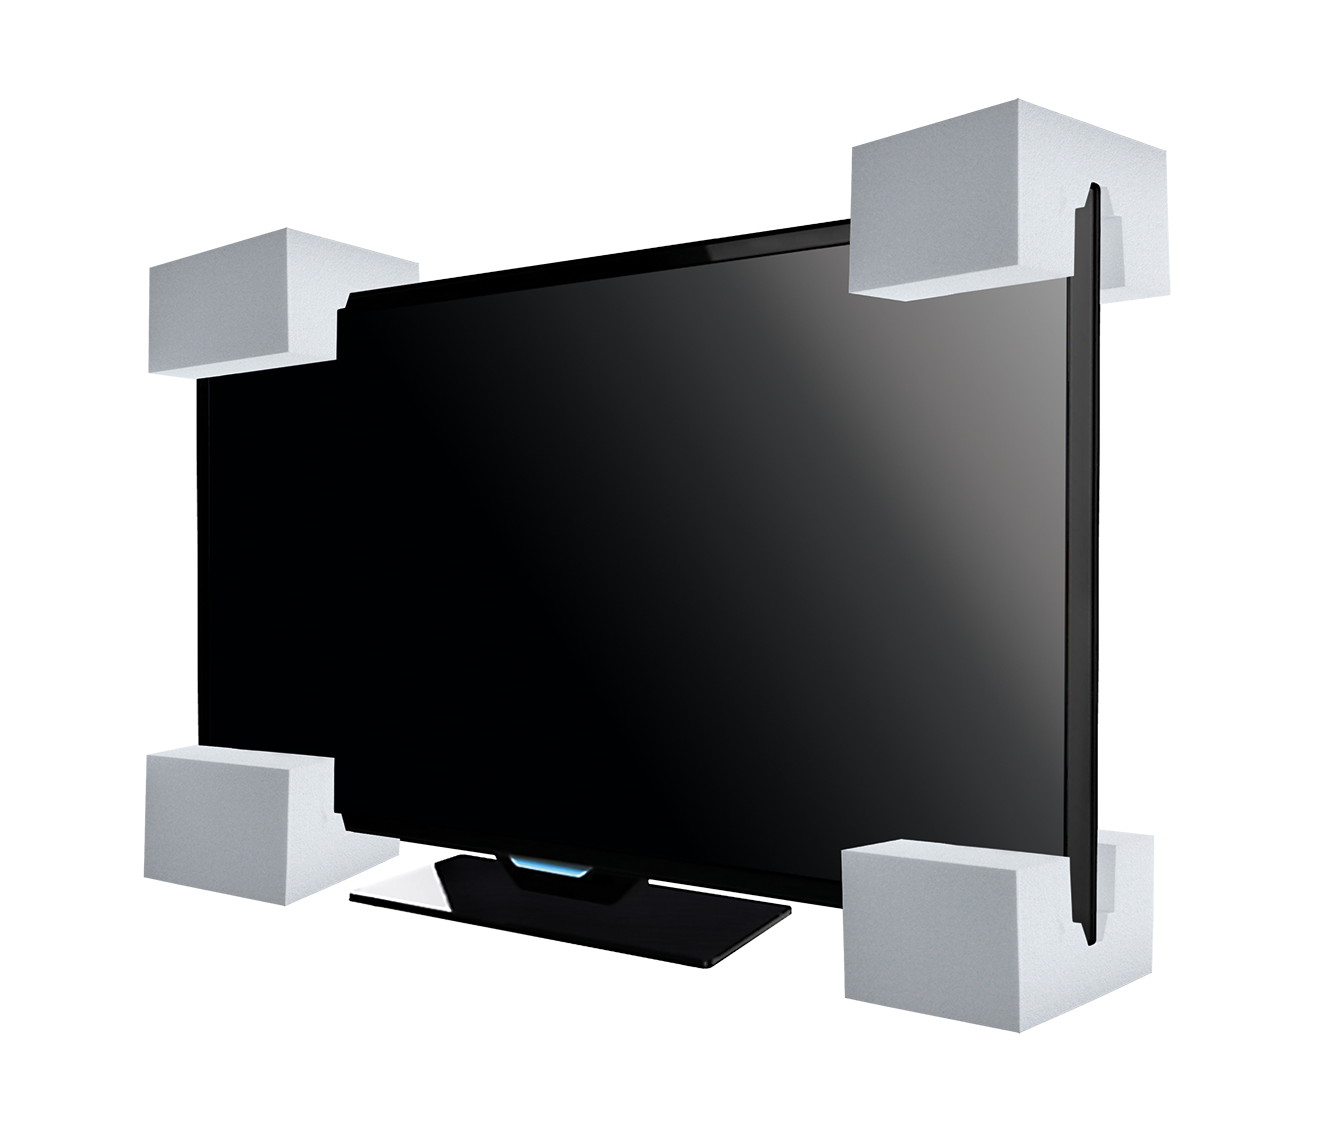 LCD-TV_WITH-FOAM.png